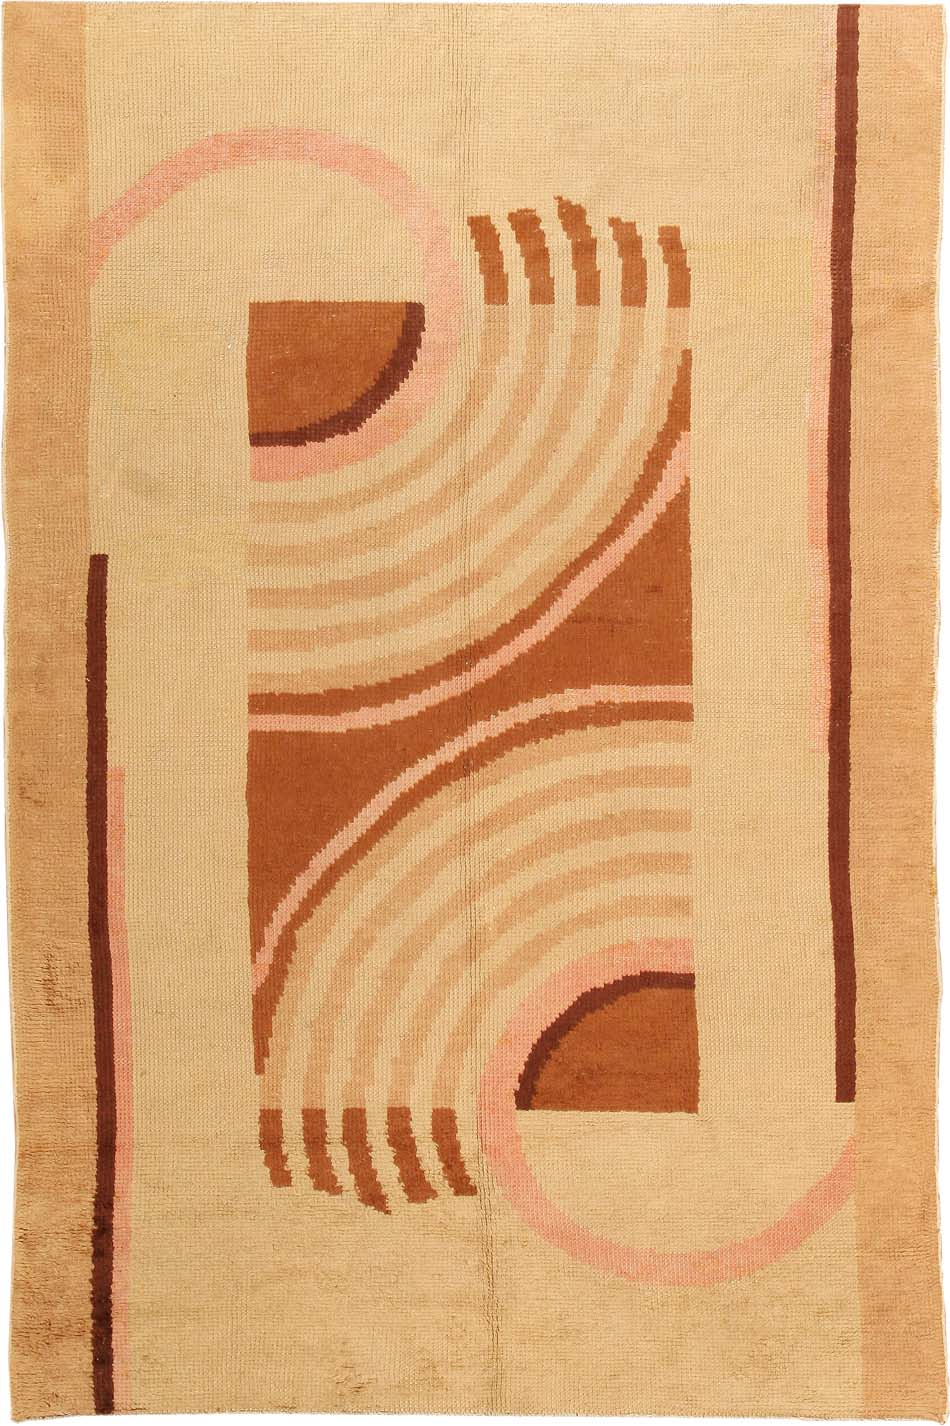 Using The Mirror Image Of An Asymmetric Spiraling Design To Produce A  Symmetric Carpet, This Well Balanced Art Deco Rug Features Strong Vertical  Lines Along ...